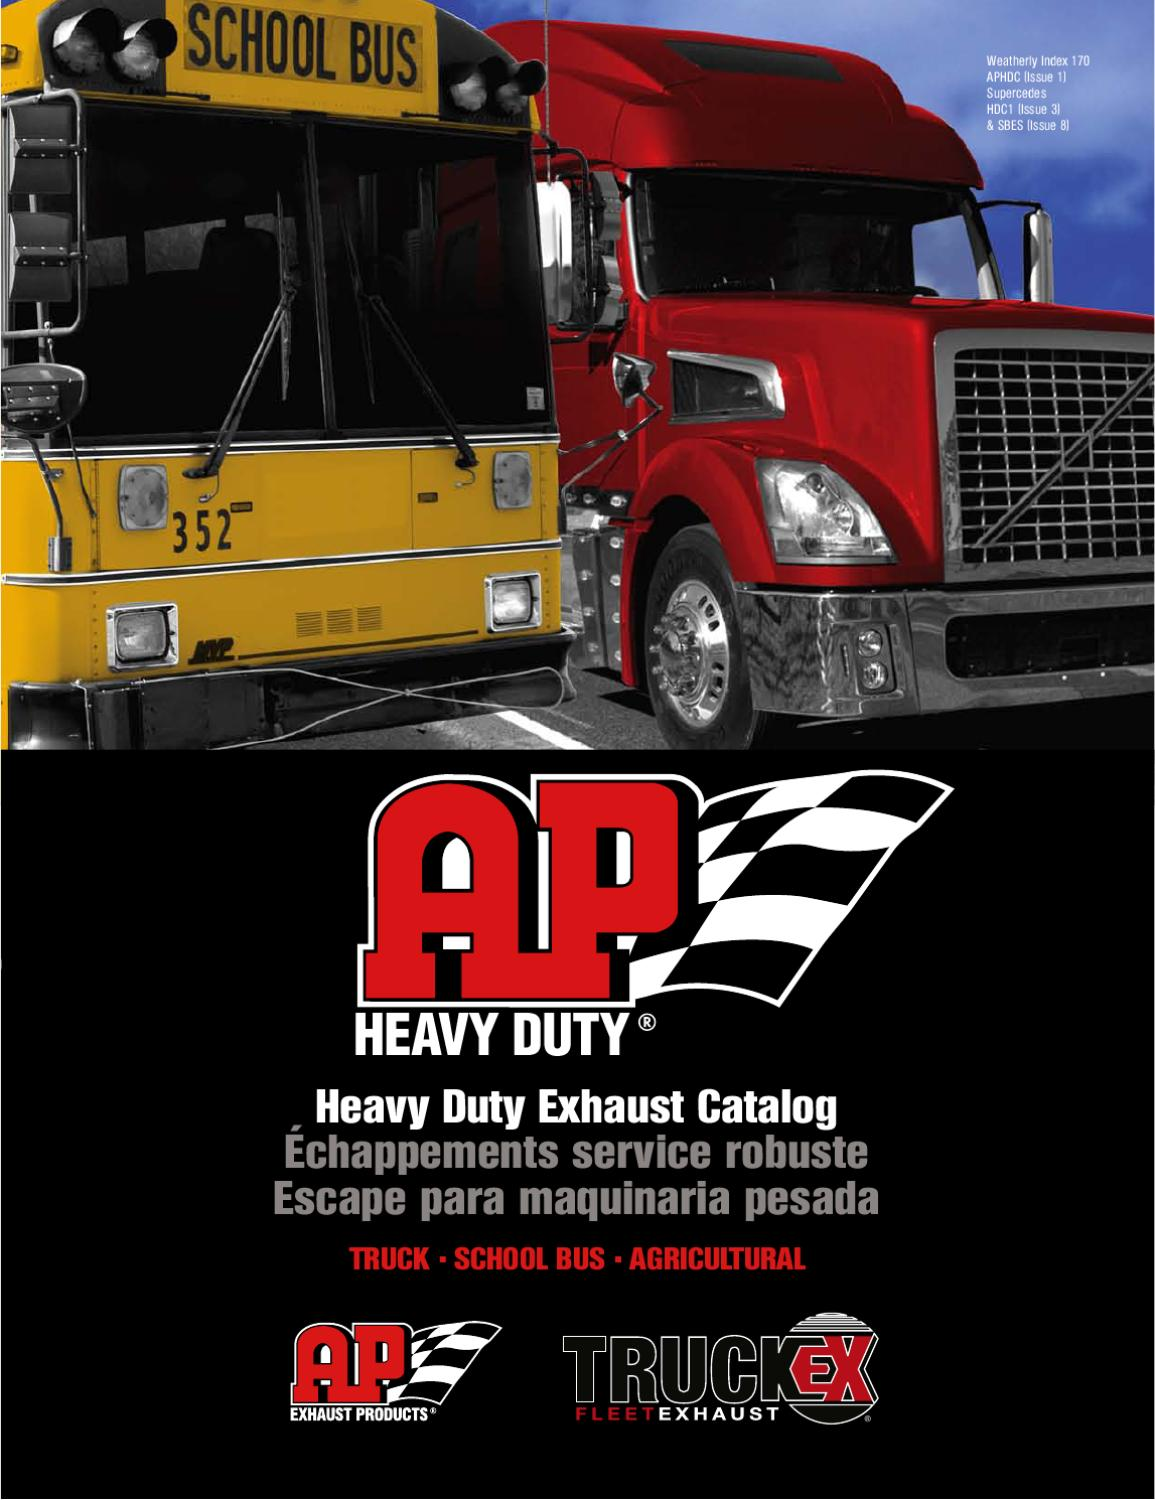 aphdc hd exhaust catalog by ap exhaust issuu